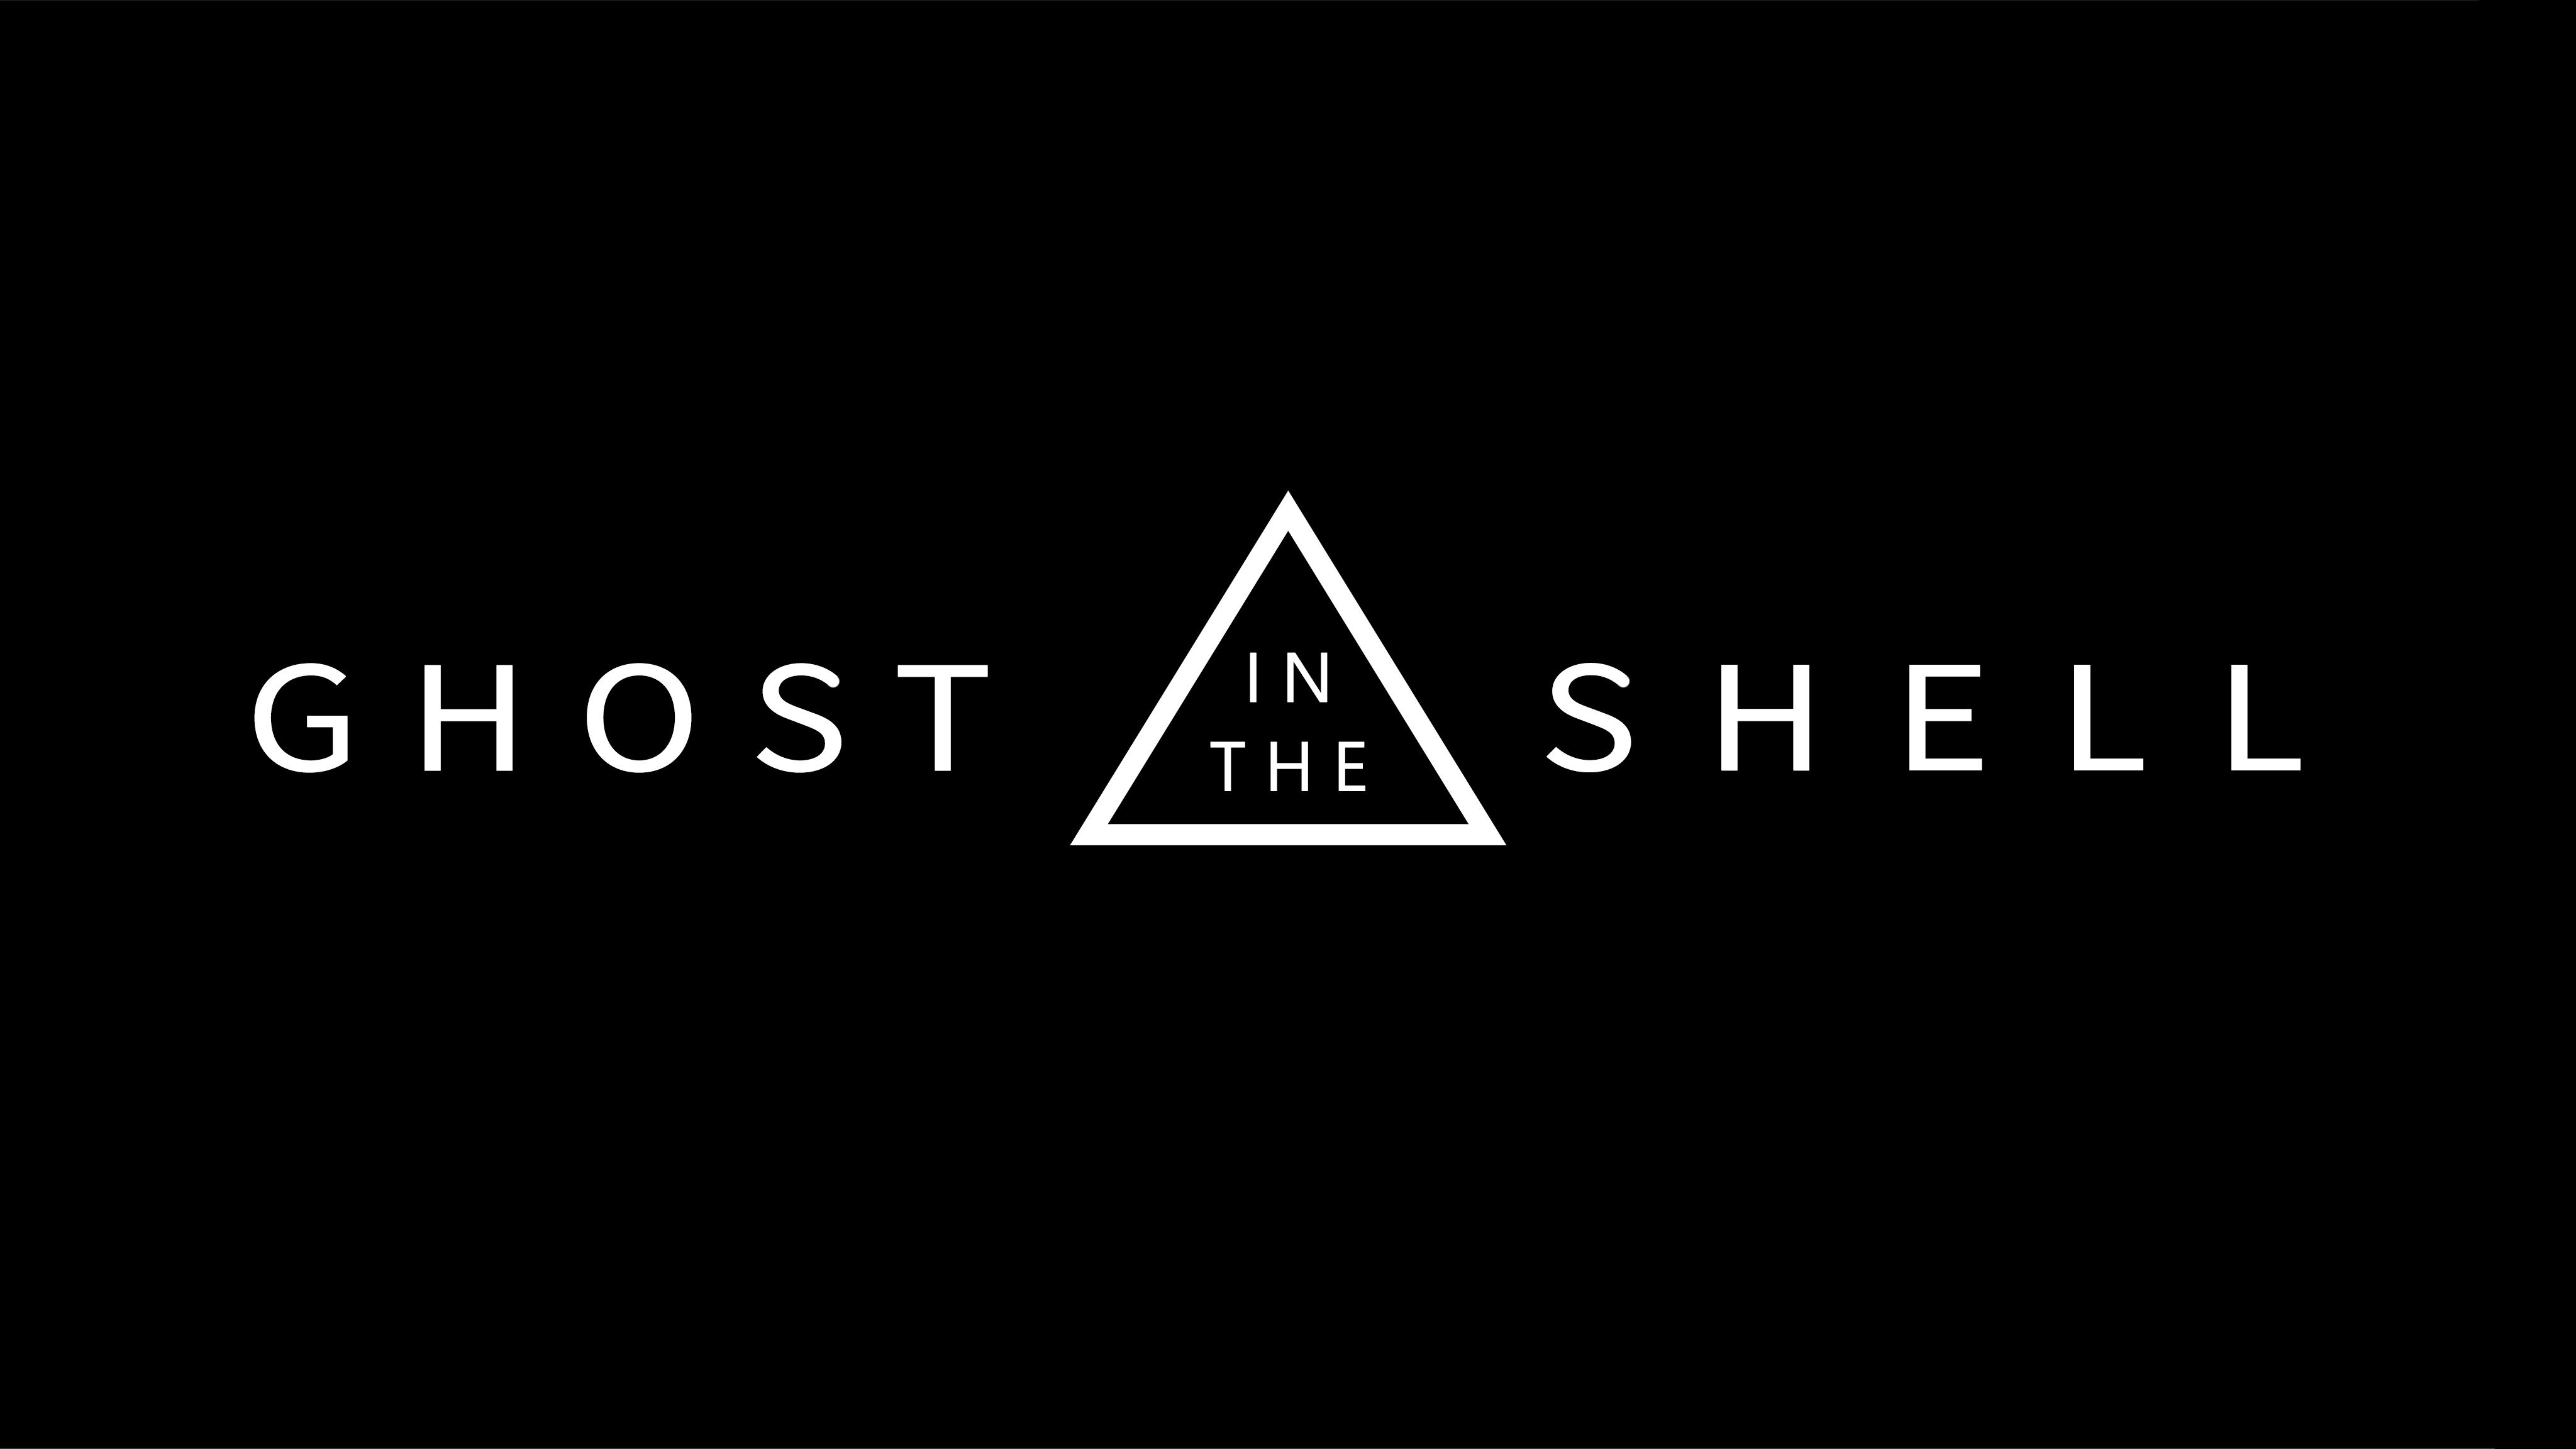 Ghost In The Shell Minimalism Simple Text Black Background